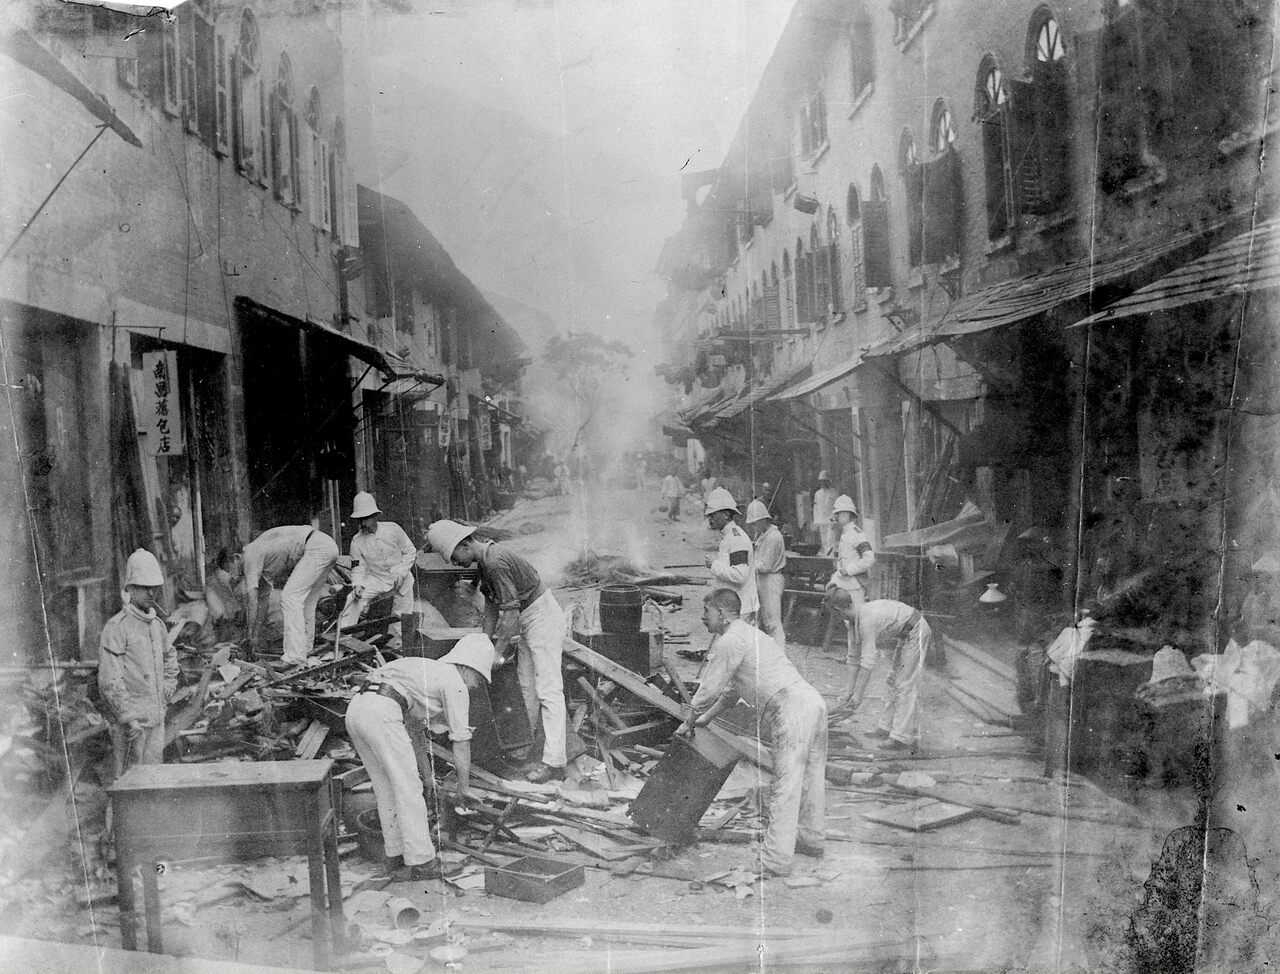 The Shropshire Regiment amid the destruction of homes in Hong Kong, 1894.